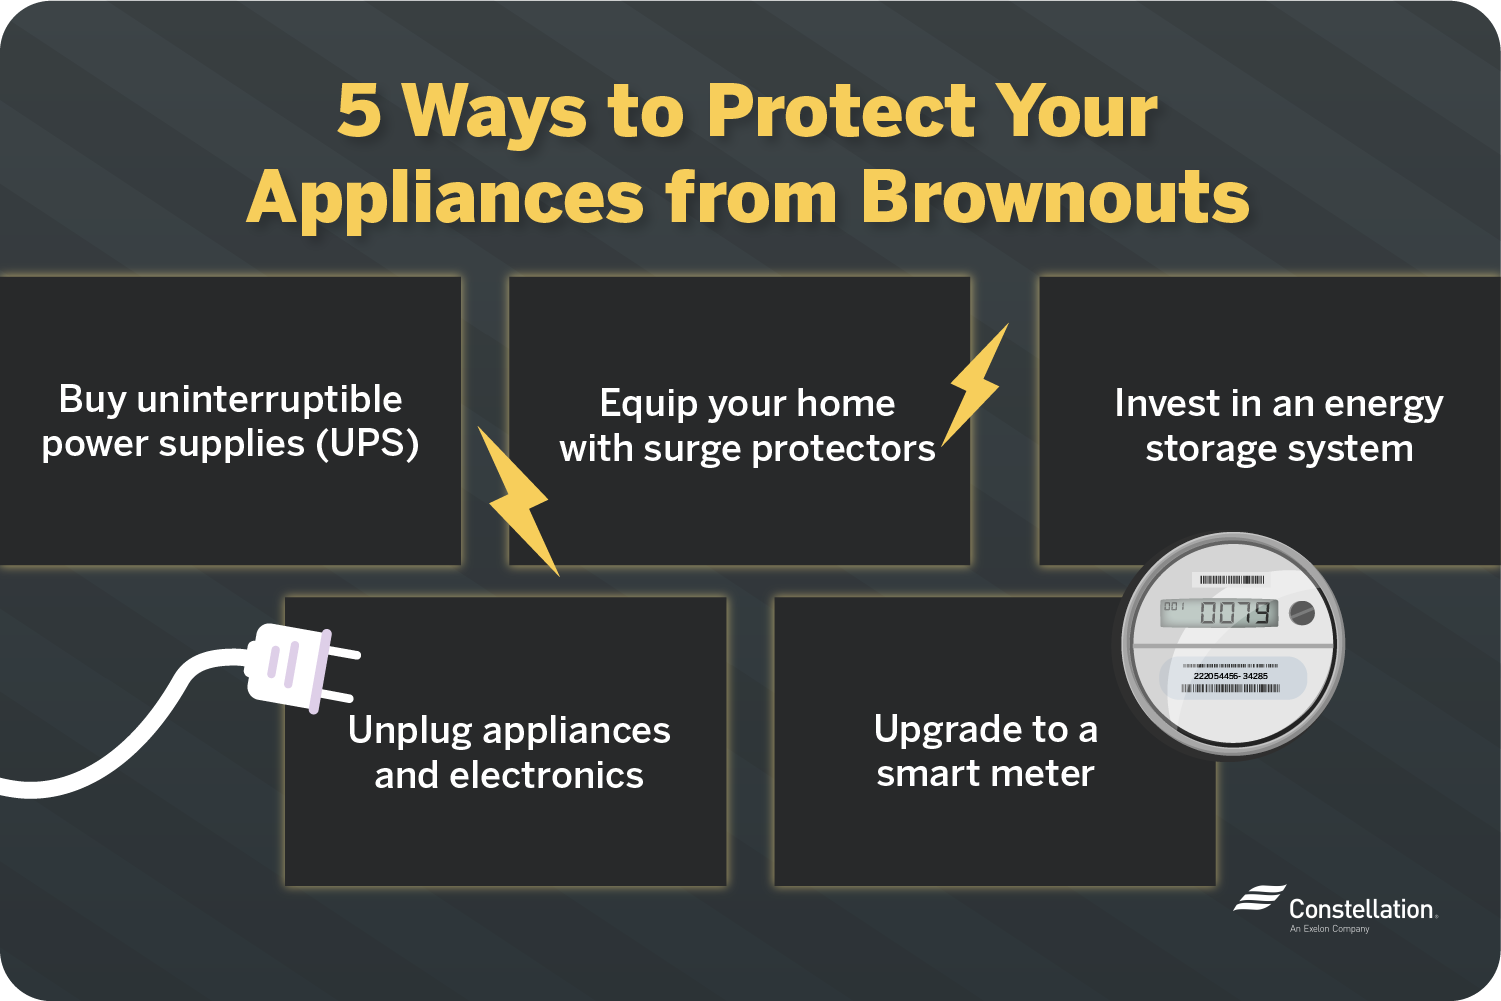 5 ways to protect your appliances from brownouts